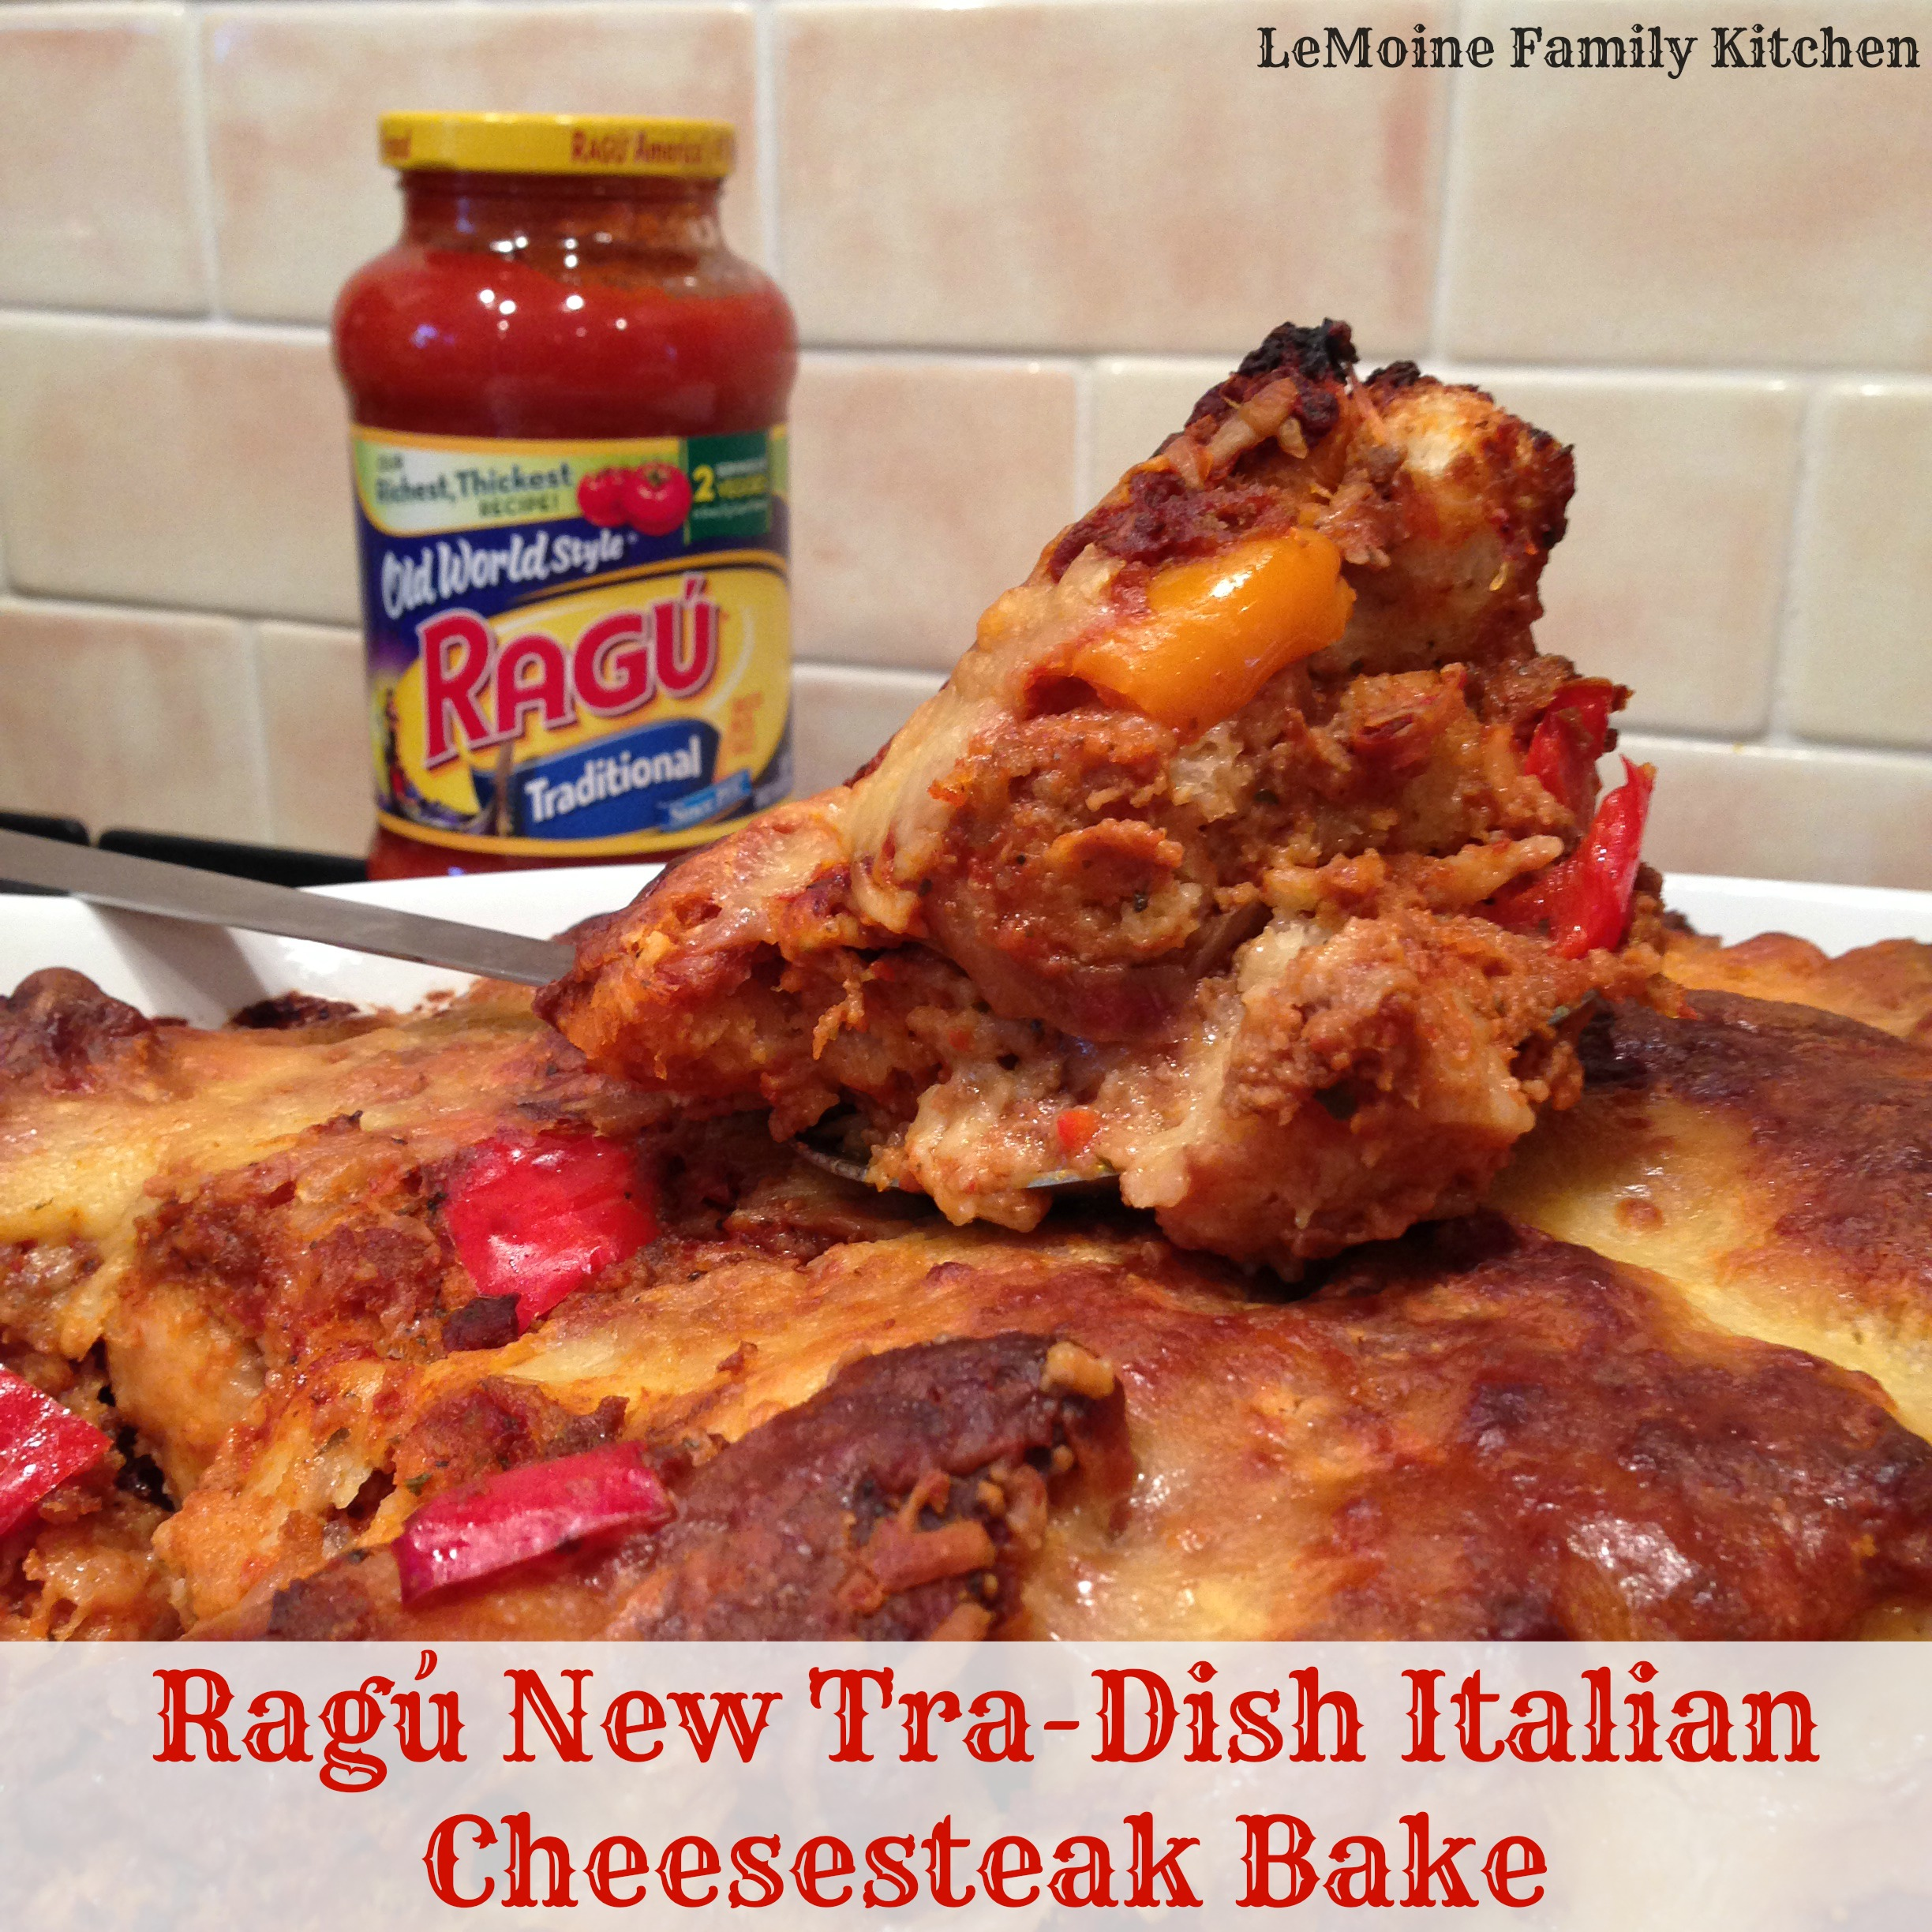 Ragú New Tra-Dish Italian Cheesesteak Bake